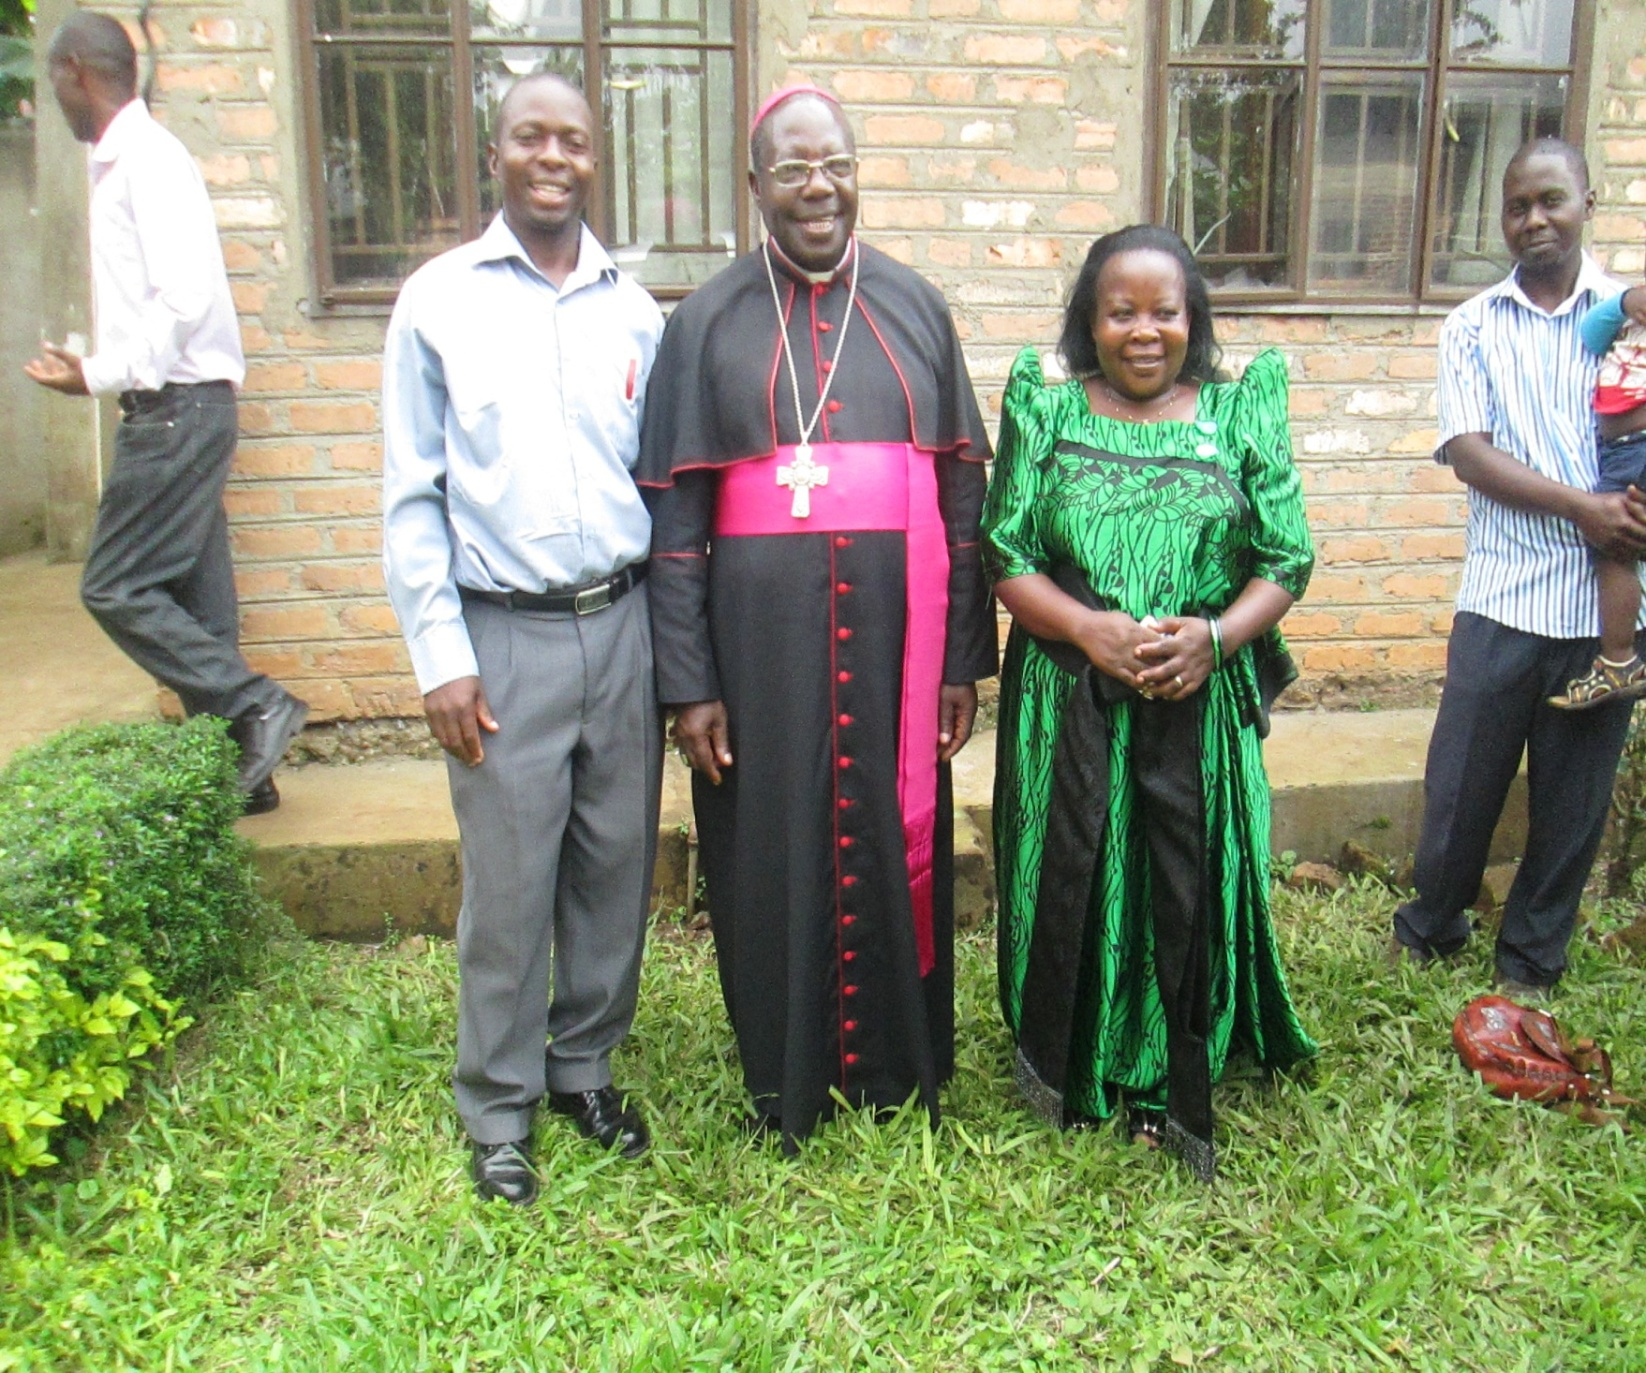 Bishop Rev. John Baptist Kaggwa Gonzaga and Paskazia